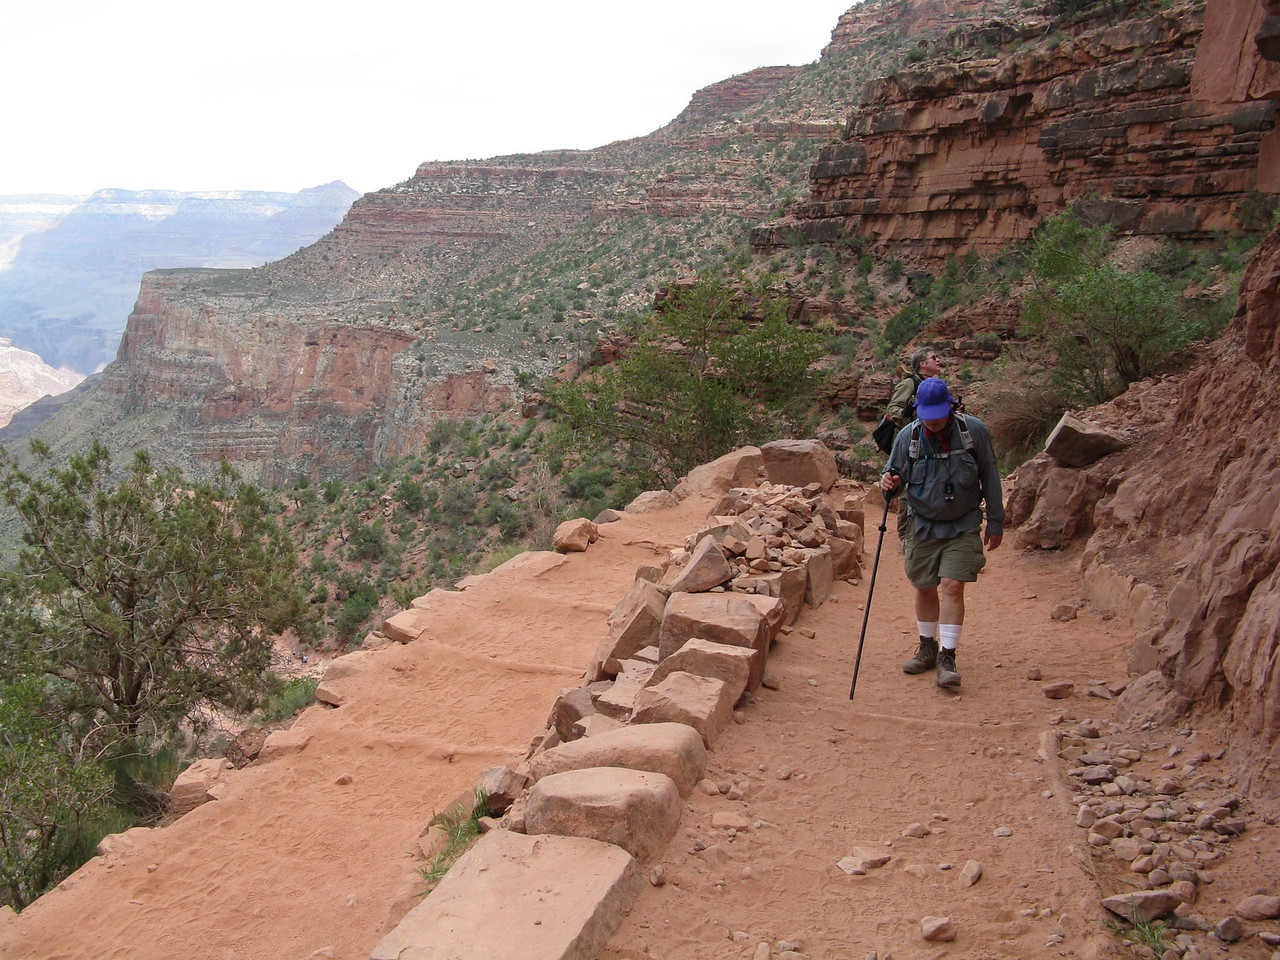 Wendell plodding uphill in the Supai Group of rock layers.